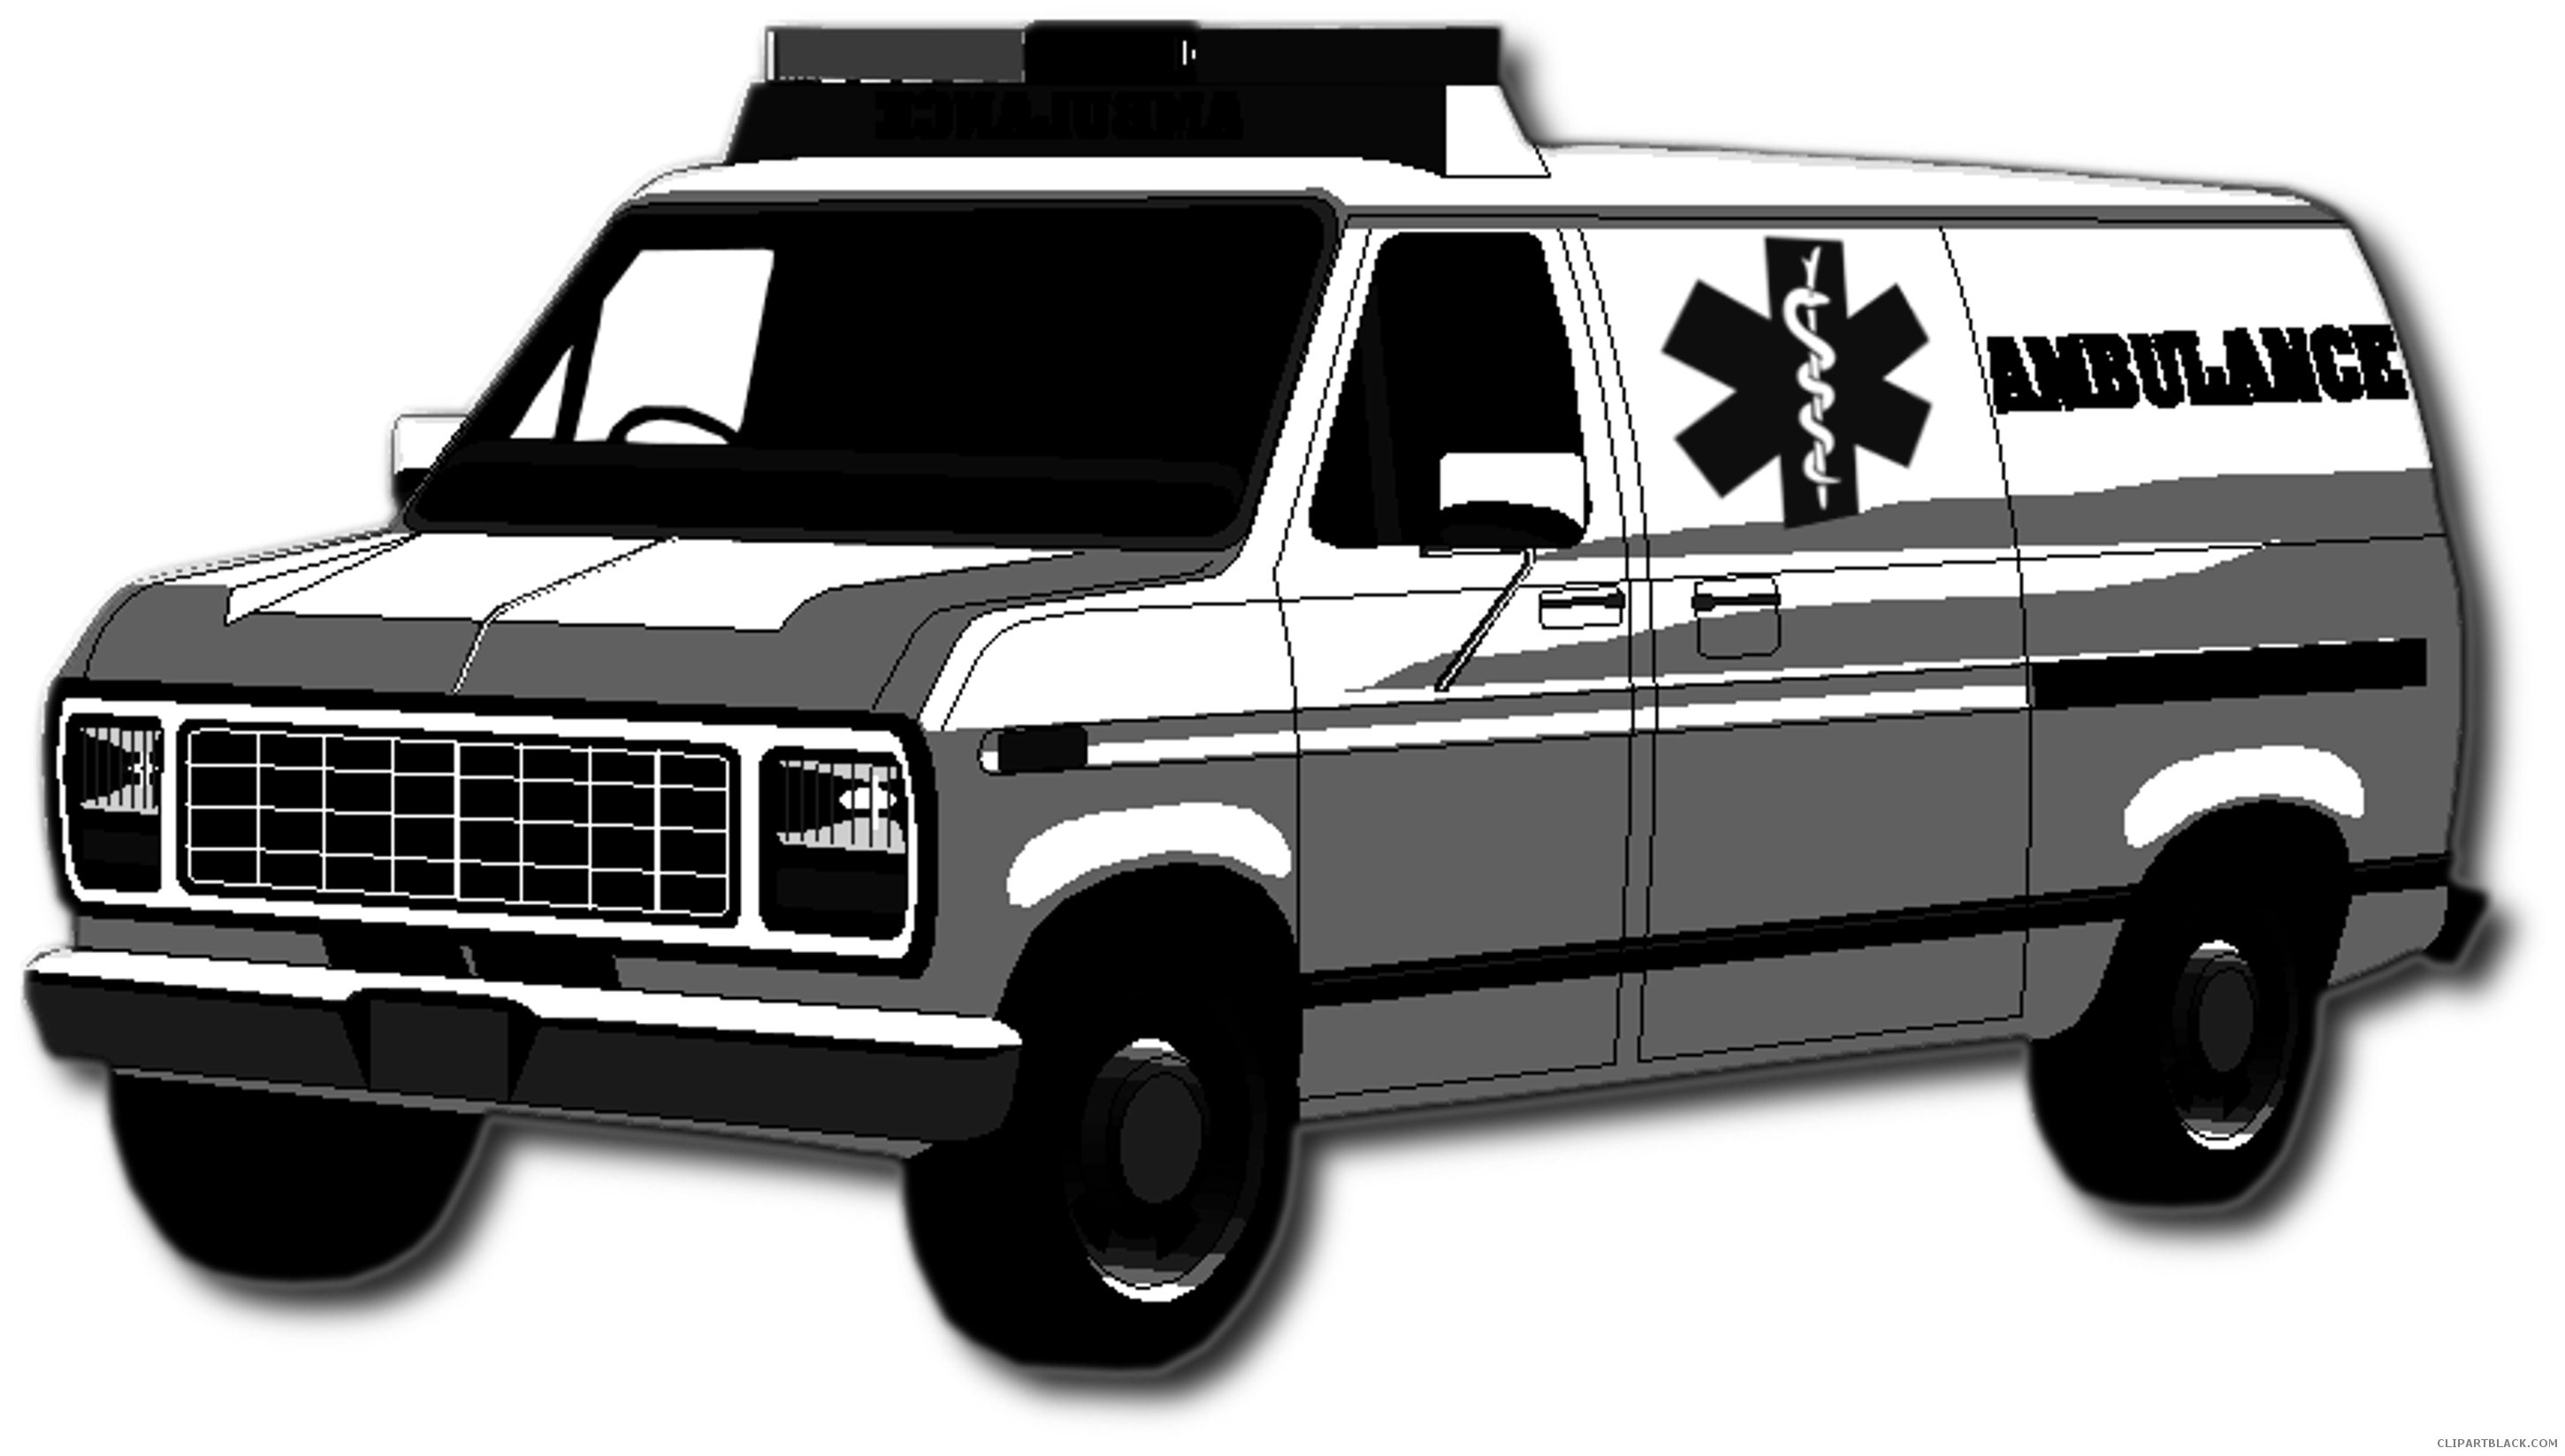 jpg royalty free library Ambulance